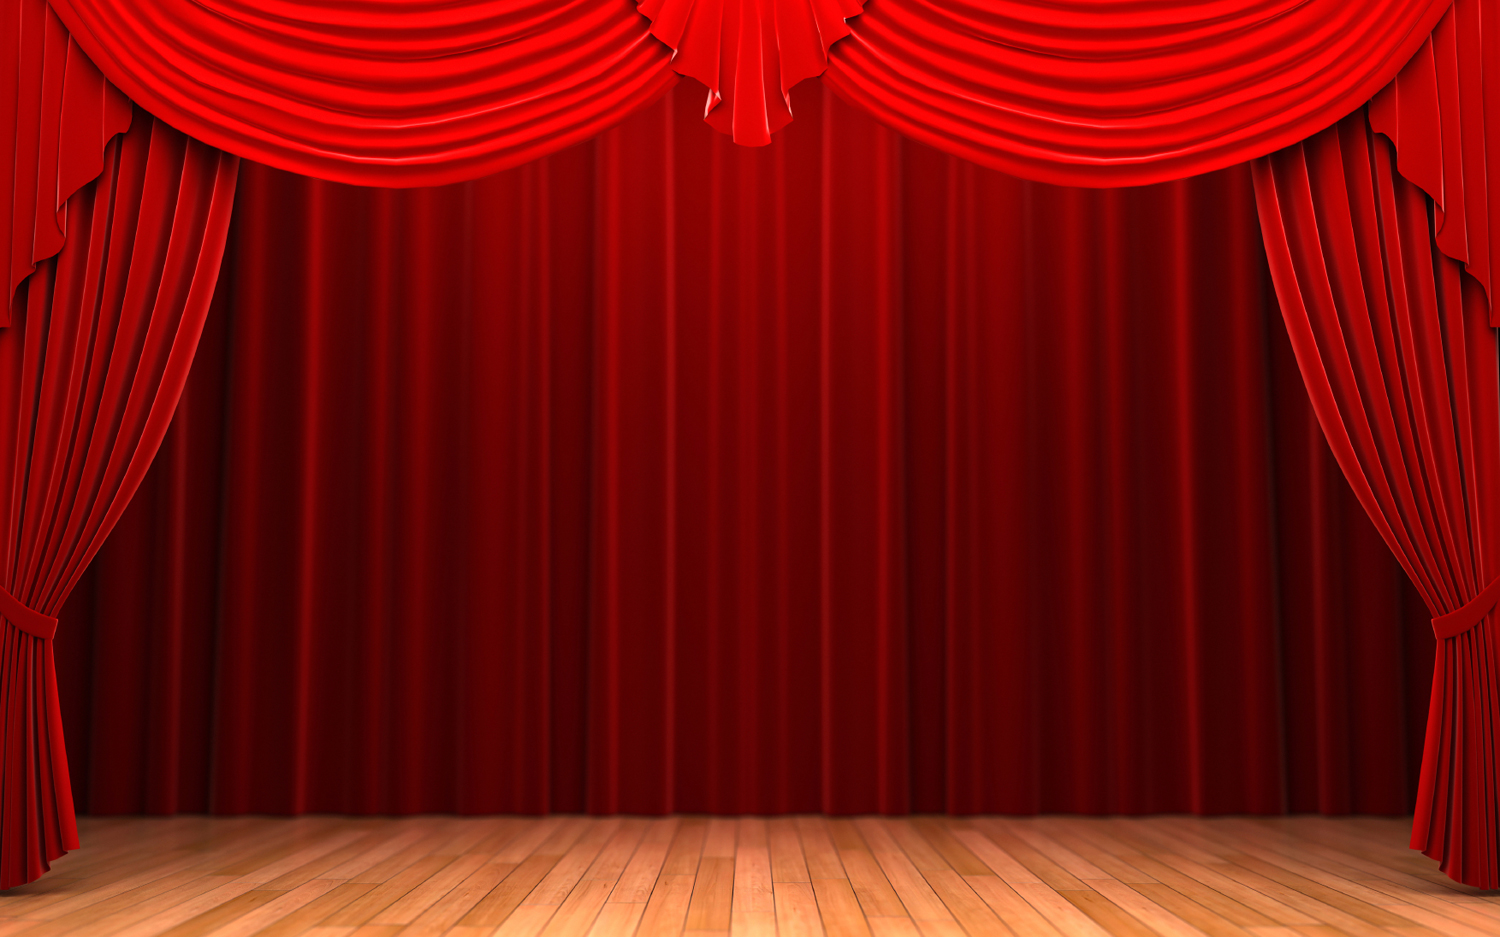 cartoon red curtains wallpaper - photo #44